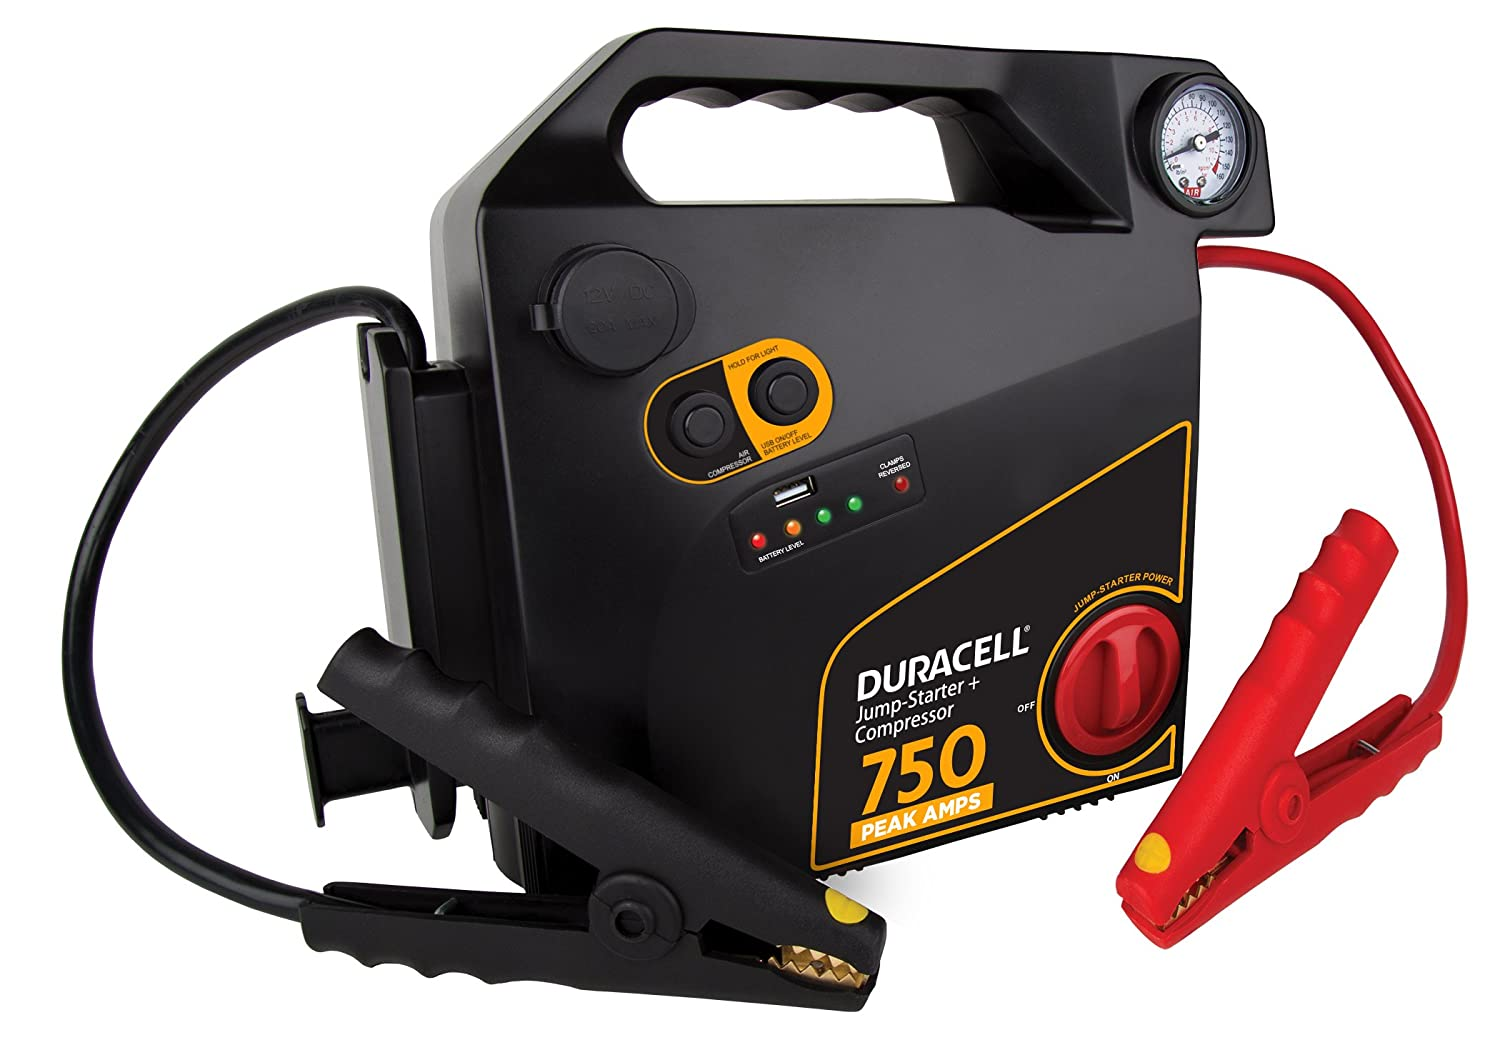 20. Duracell Portable Emergency Jumpstarter with Compressor